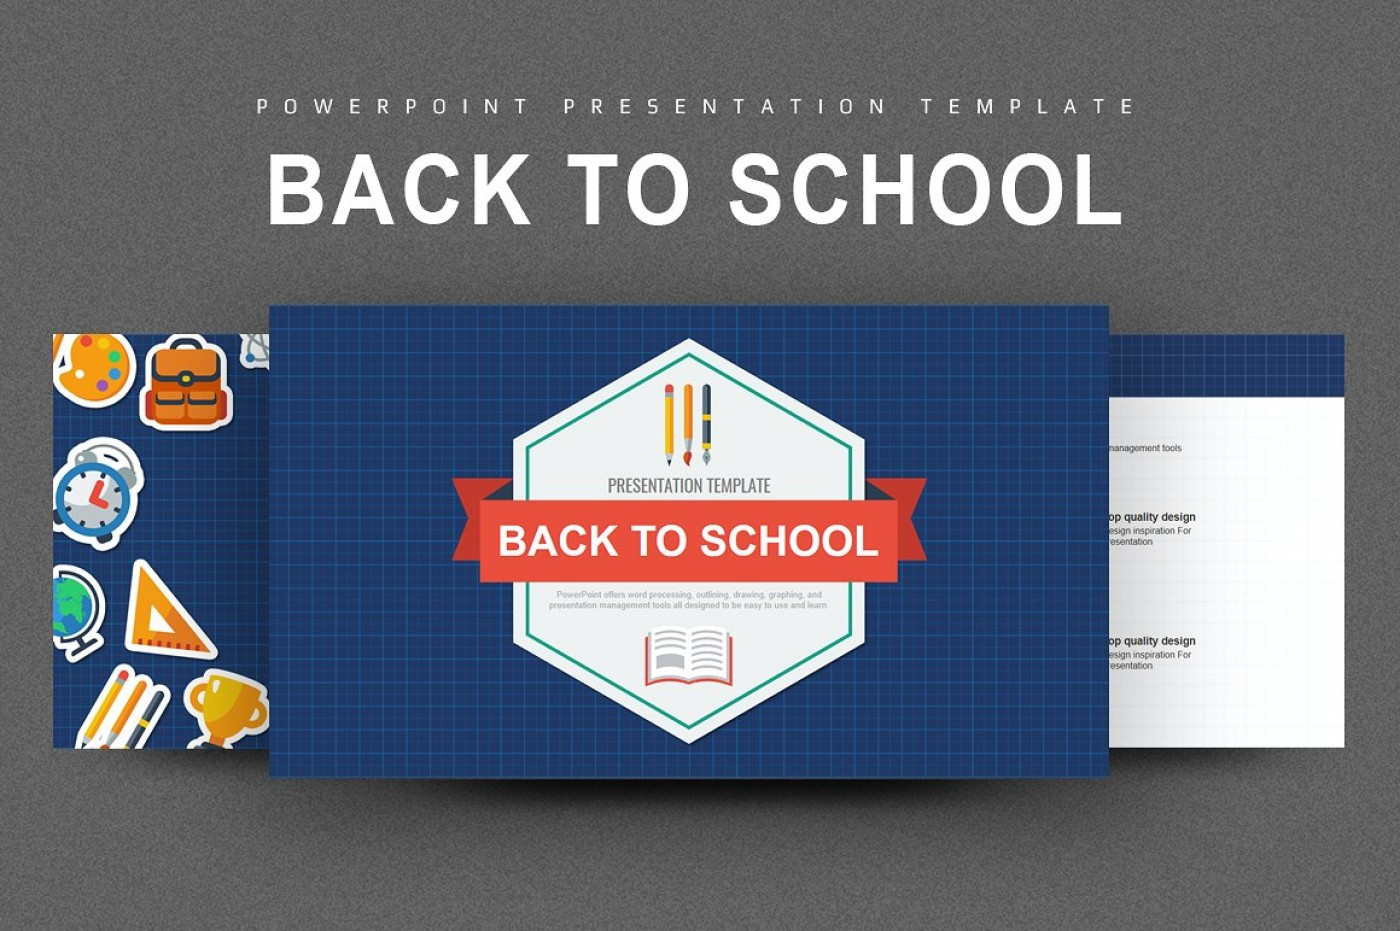 003 Wondrou Powerpoint Template Free Education Idea  Download Presentation Ppt1400